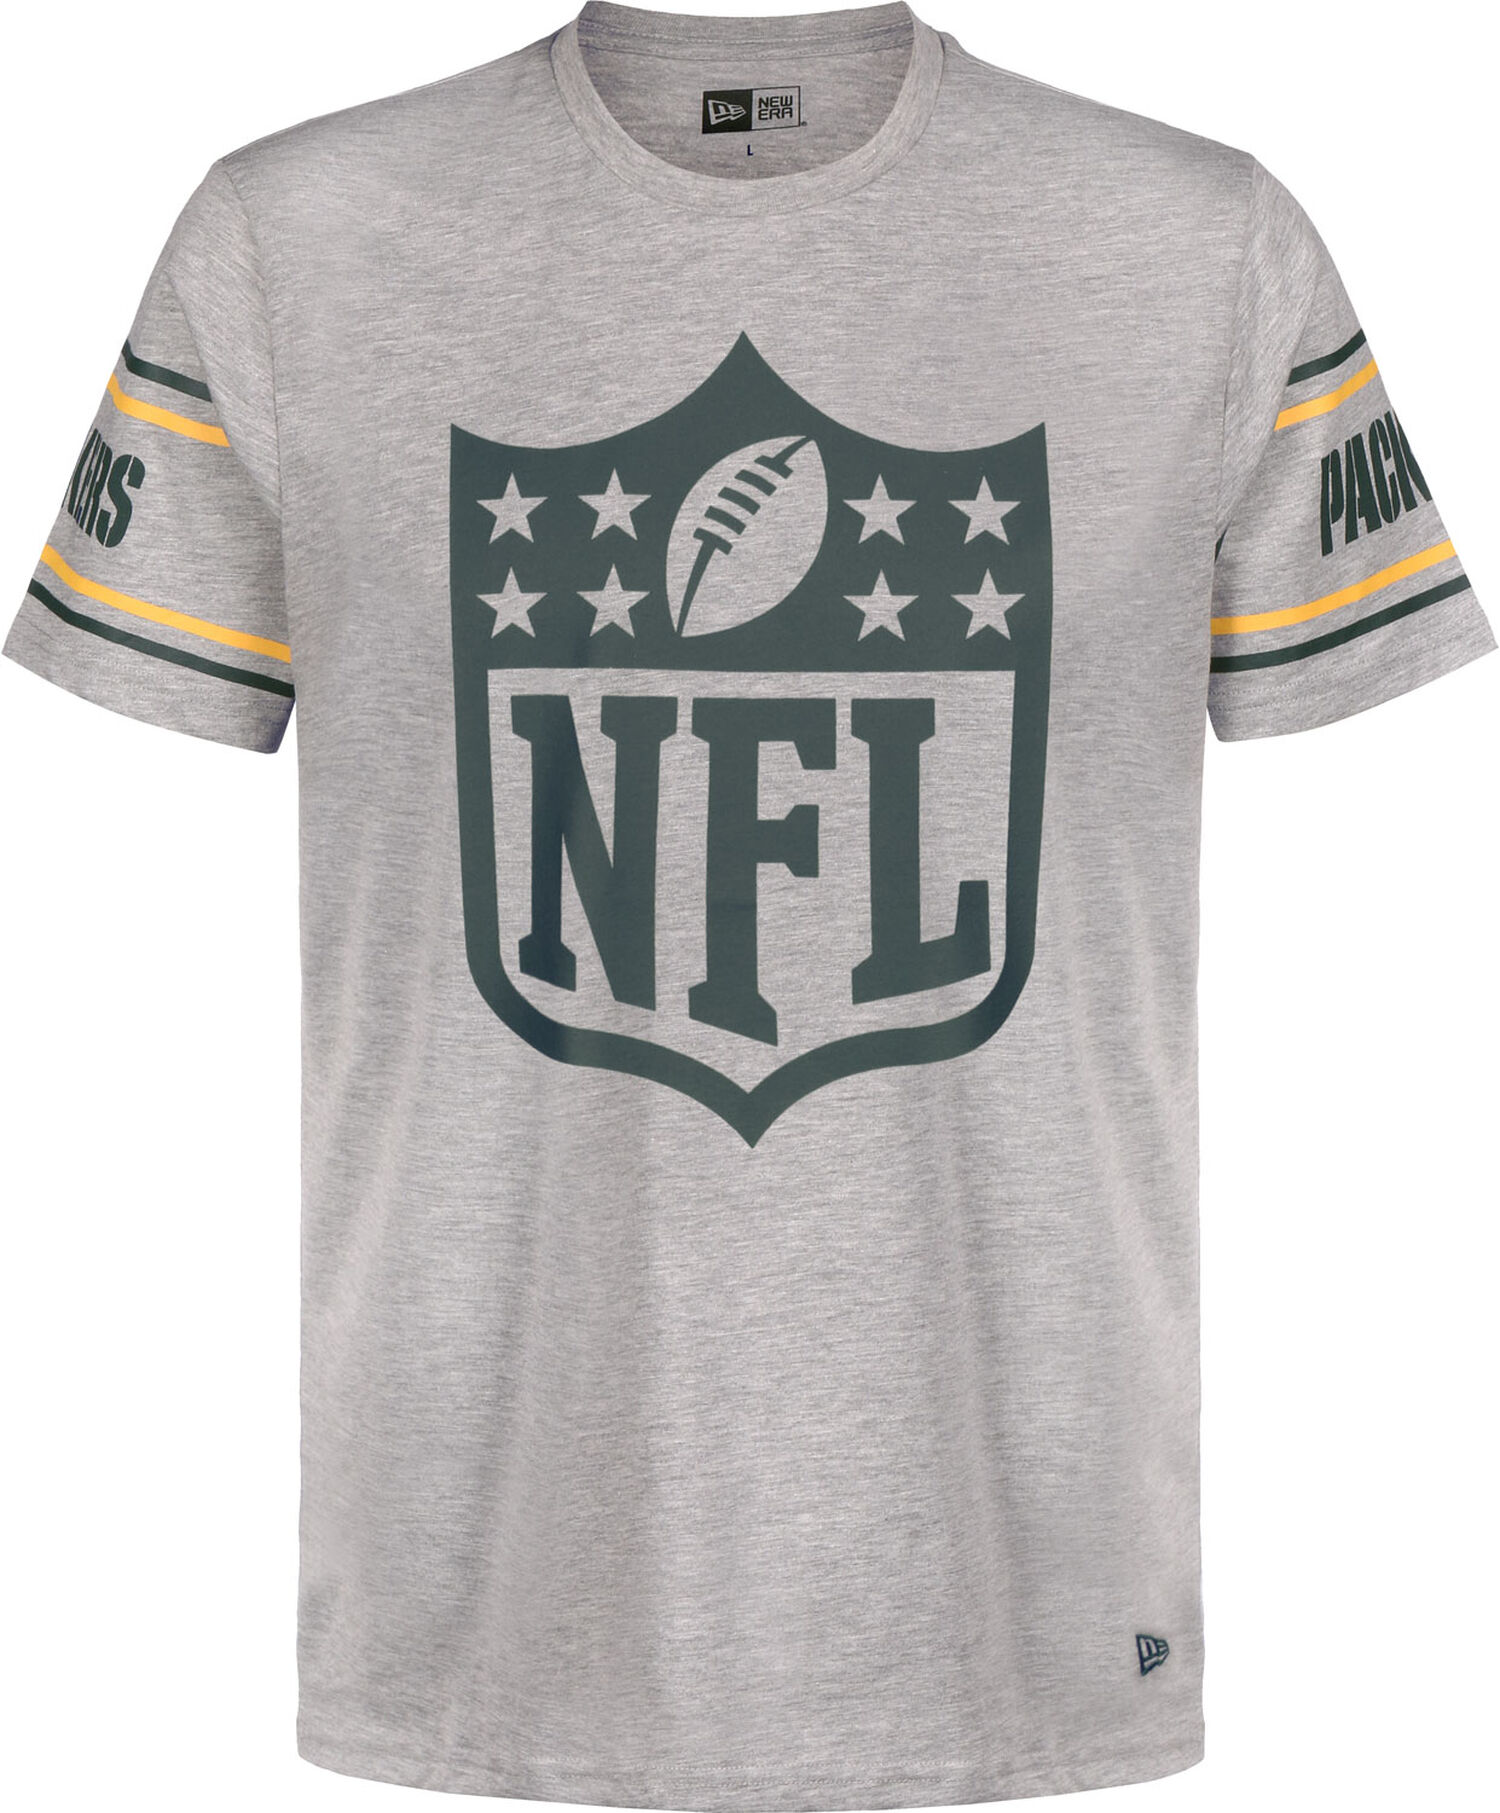 NFL Badge Green Bay Packers